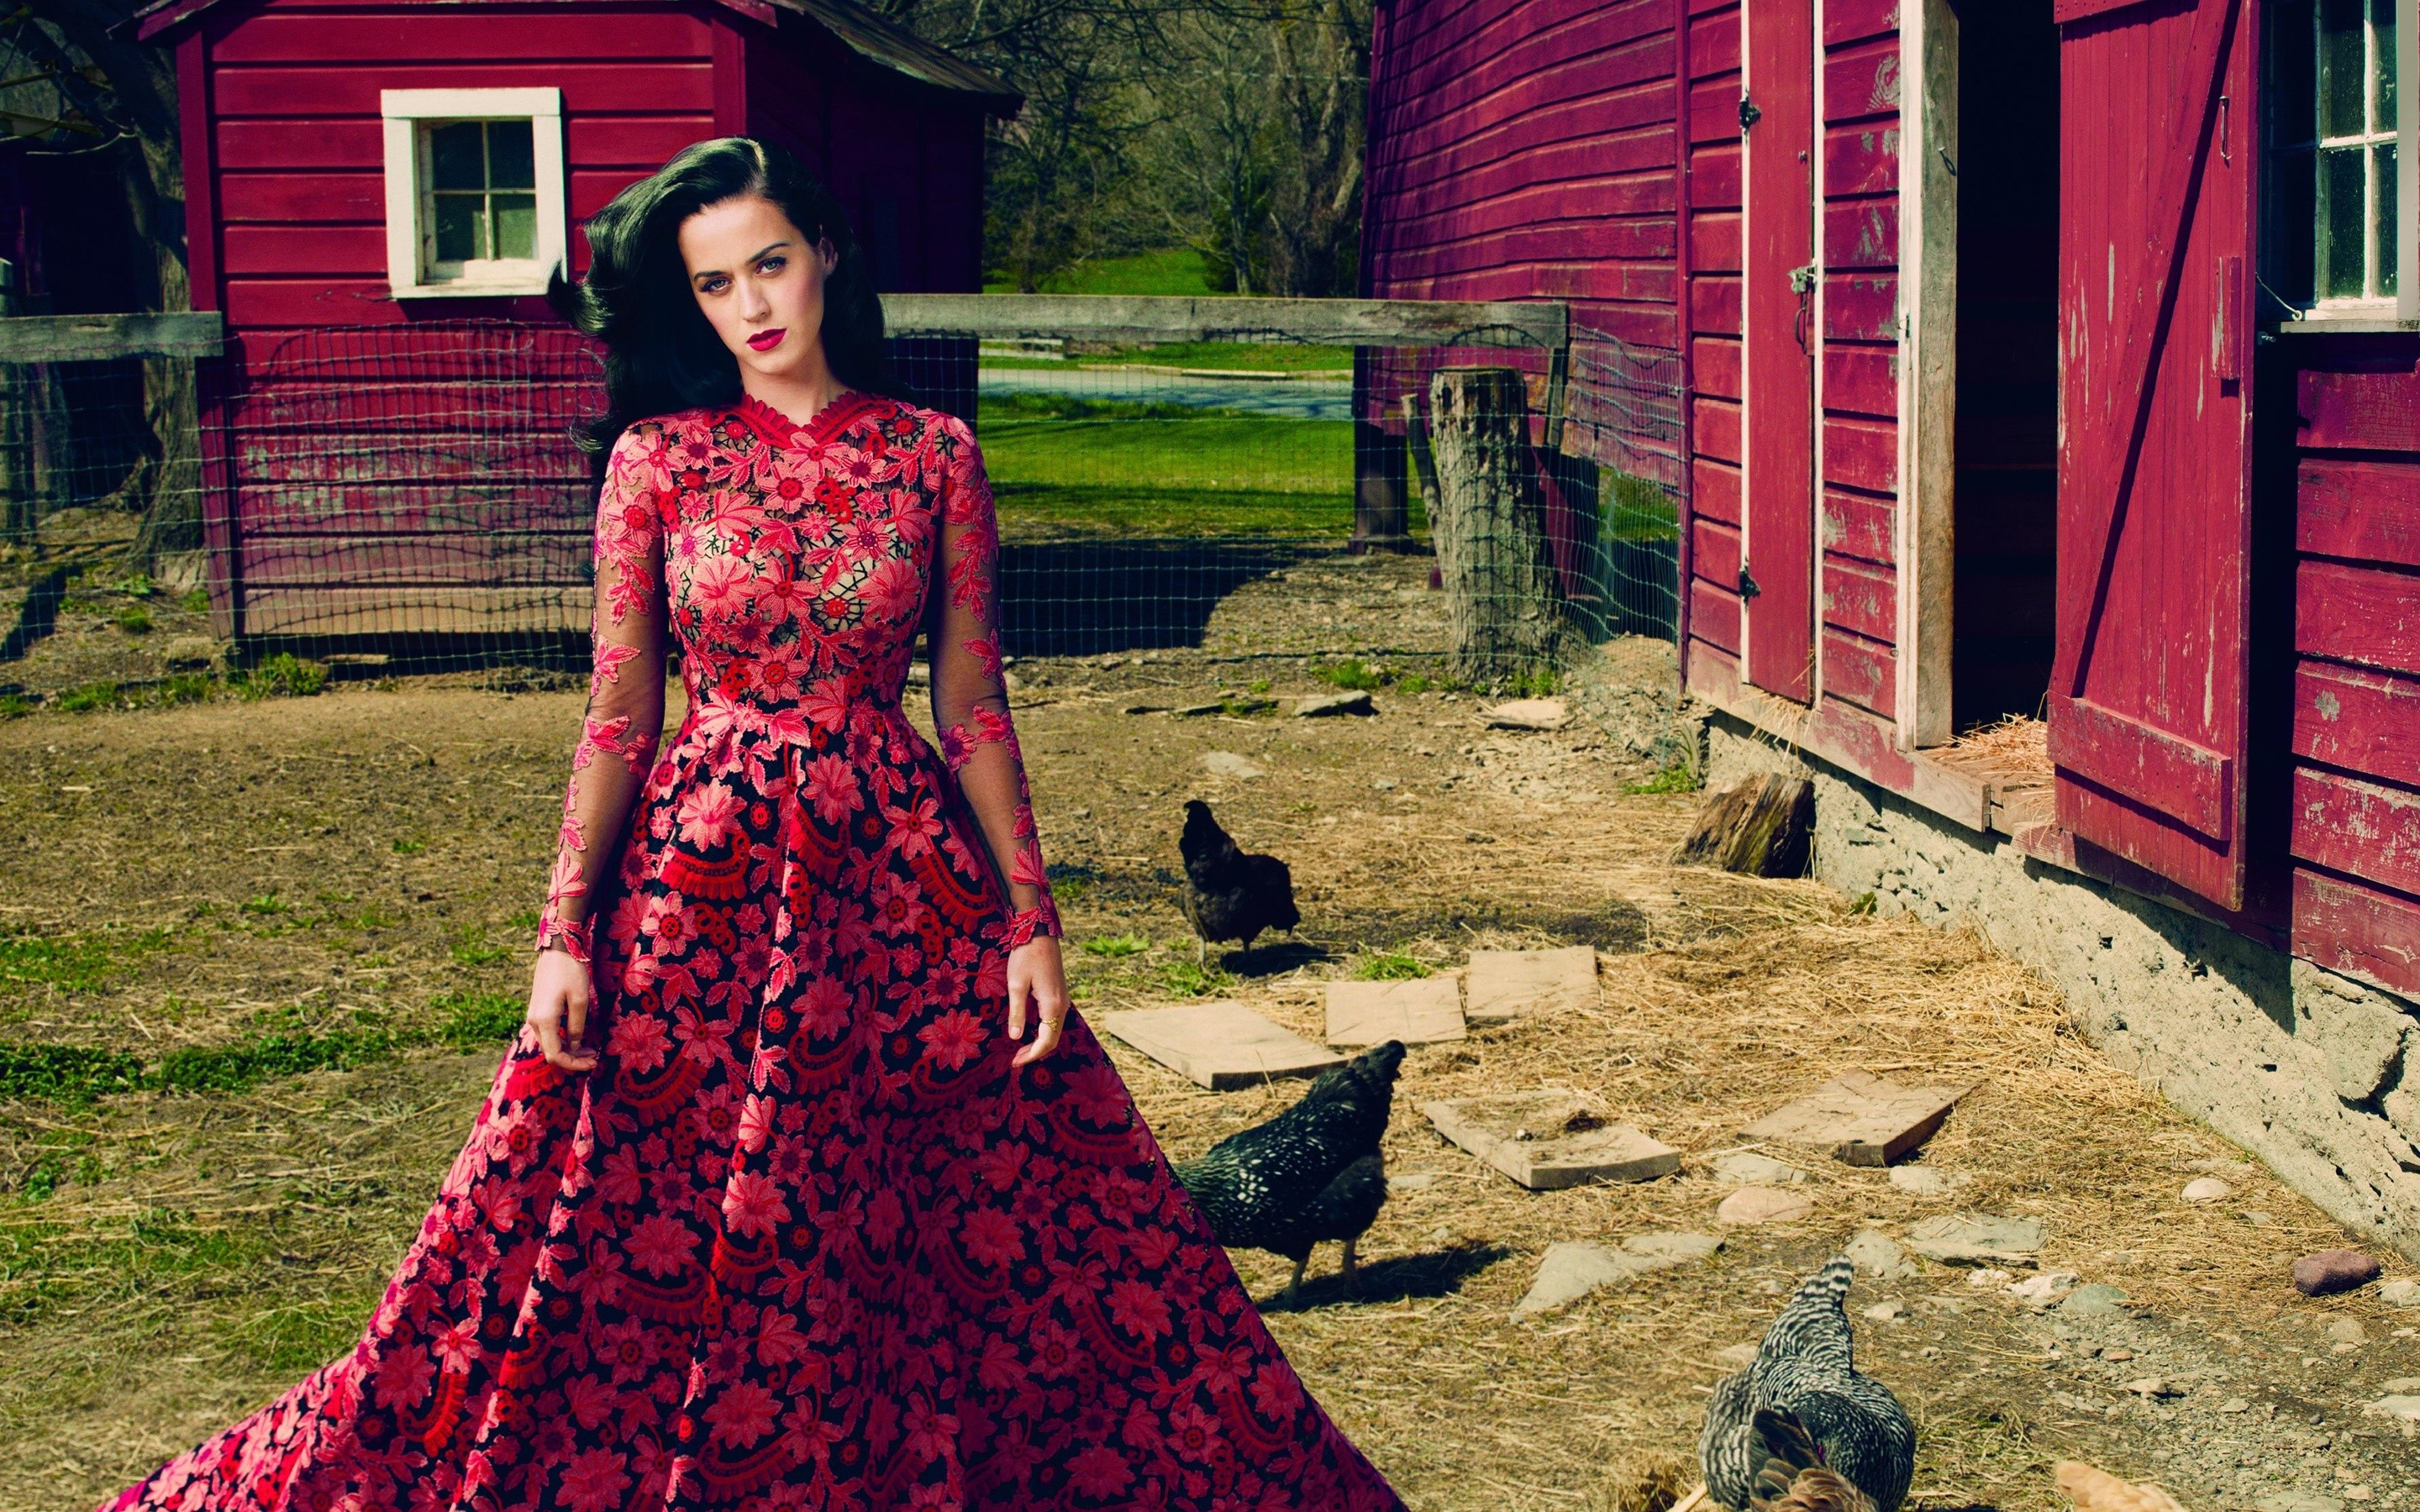 Wallpaper Katy Perry in a red dress